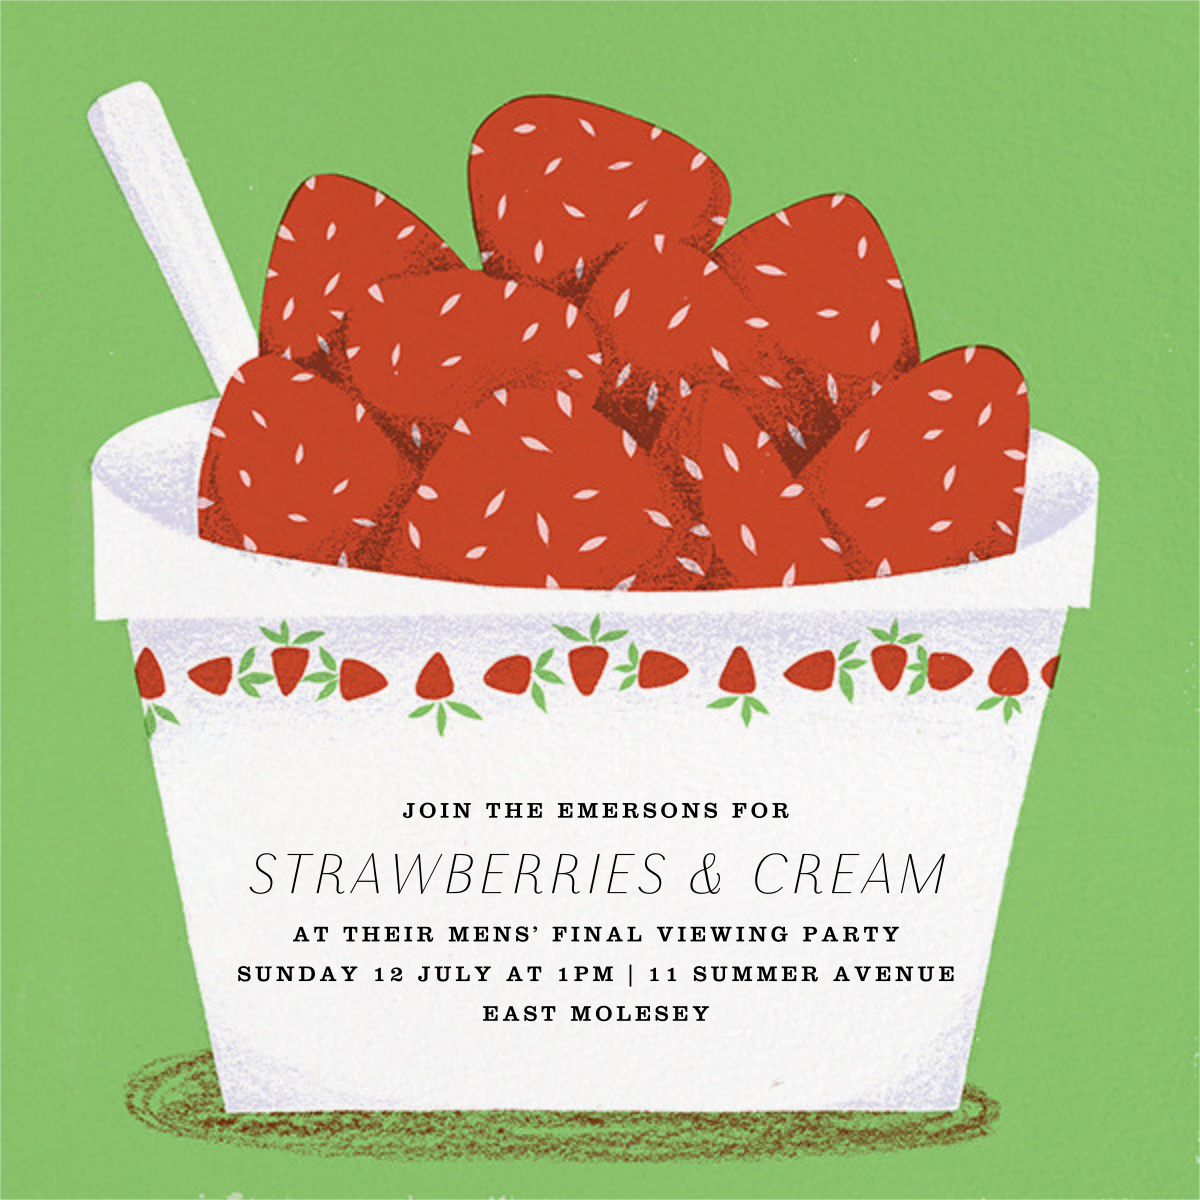 Strawberries and Cream - Paperless Post - Spring entertaining